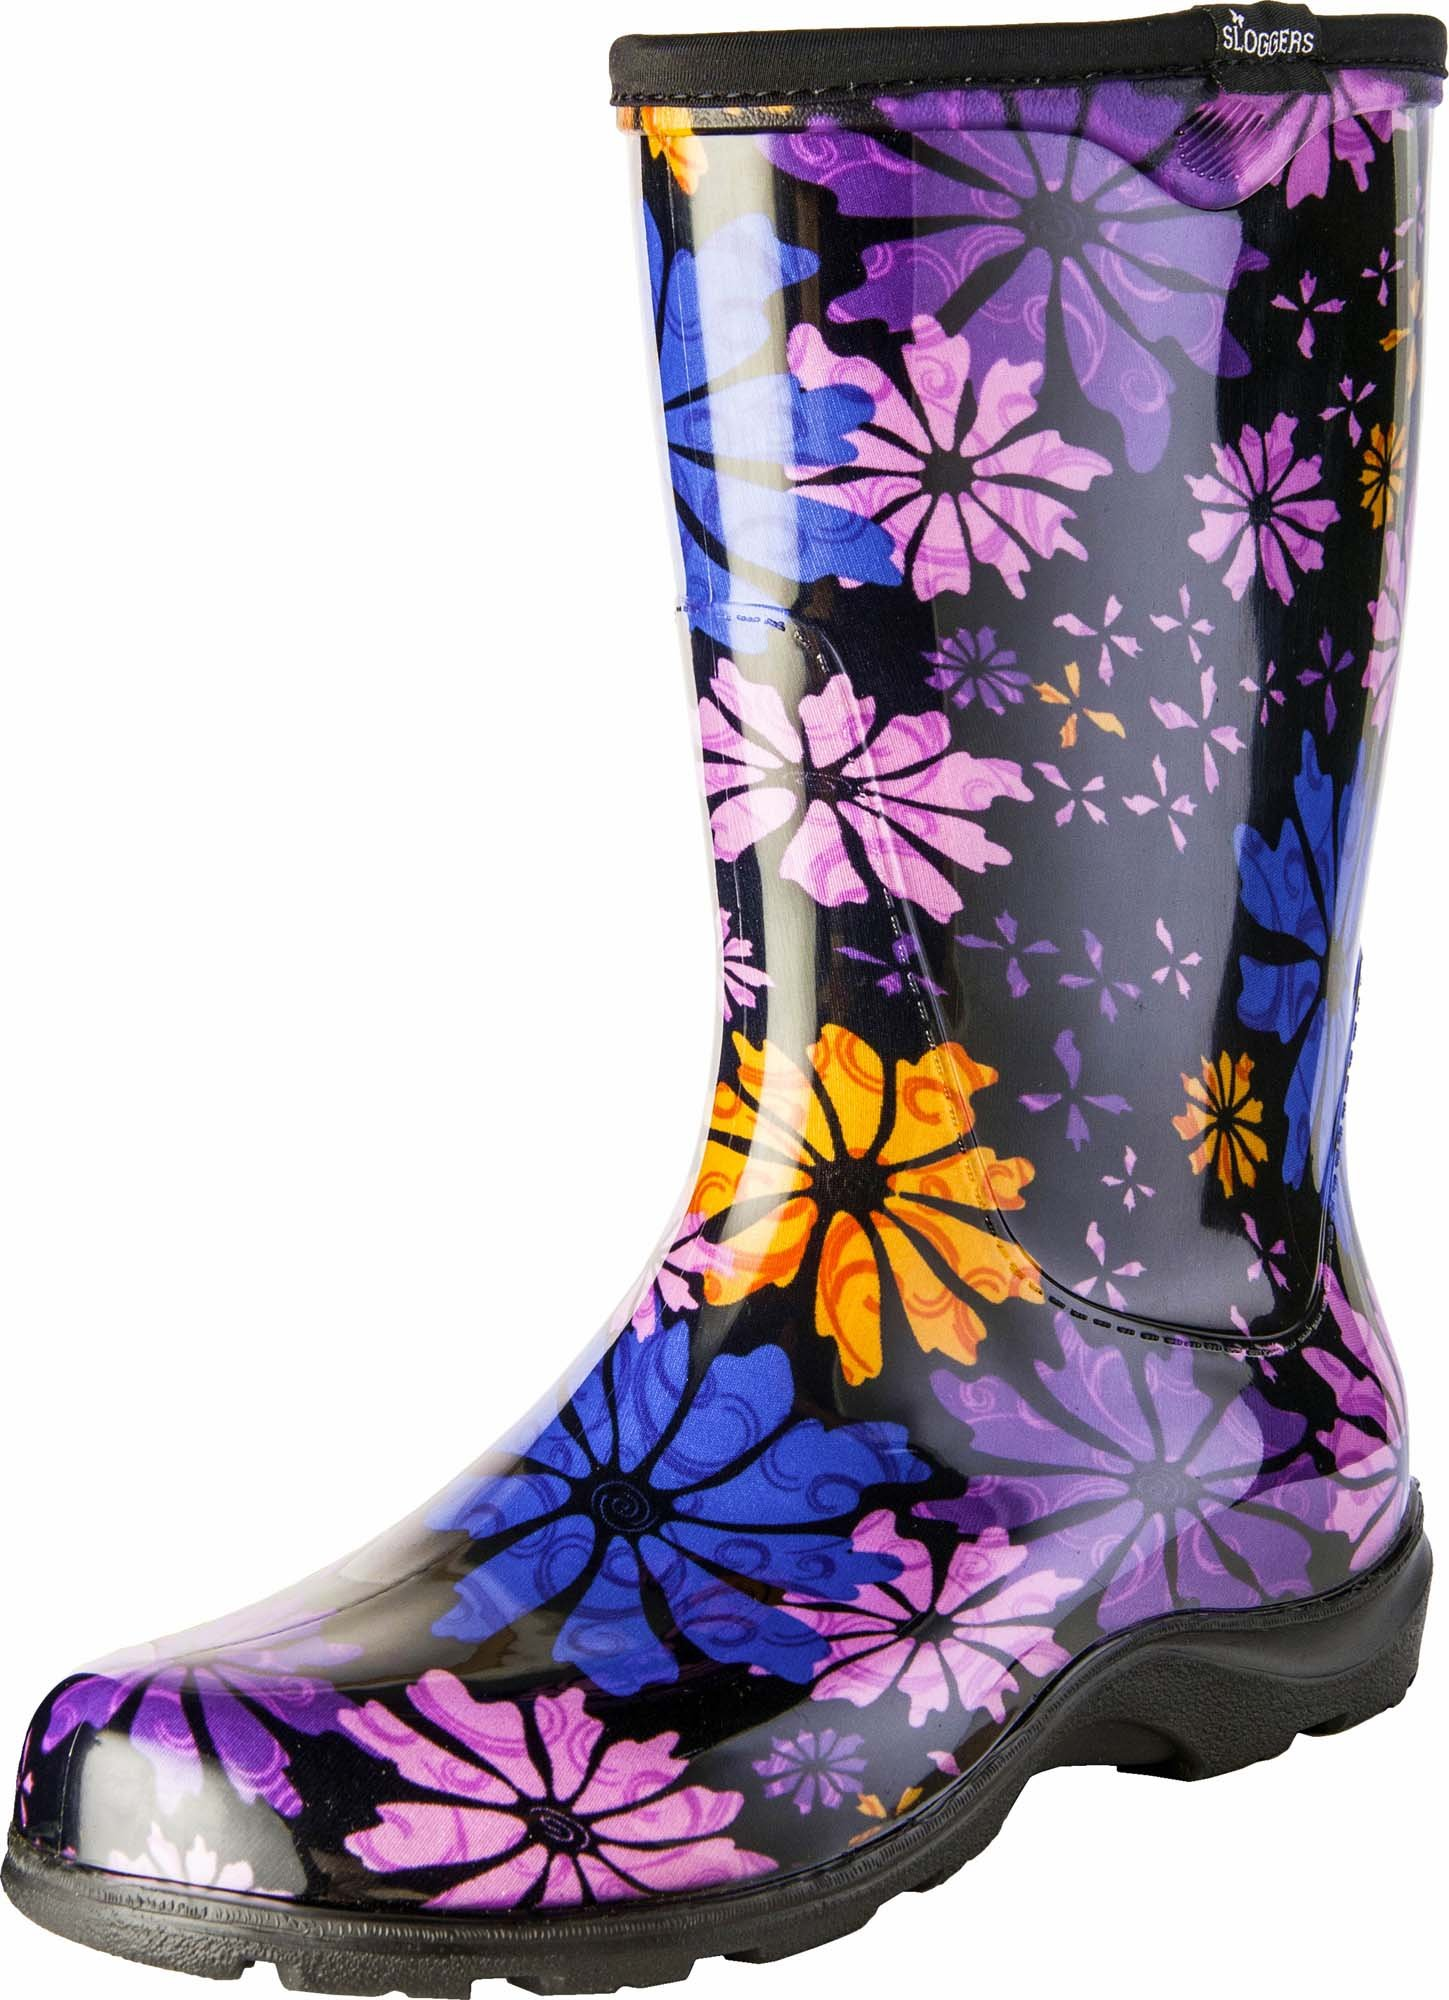 Sloggers Women's Waterproof Rain and Garden Boot with Comfort Insole, Flower Power, Size 6, Style 5016FP06